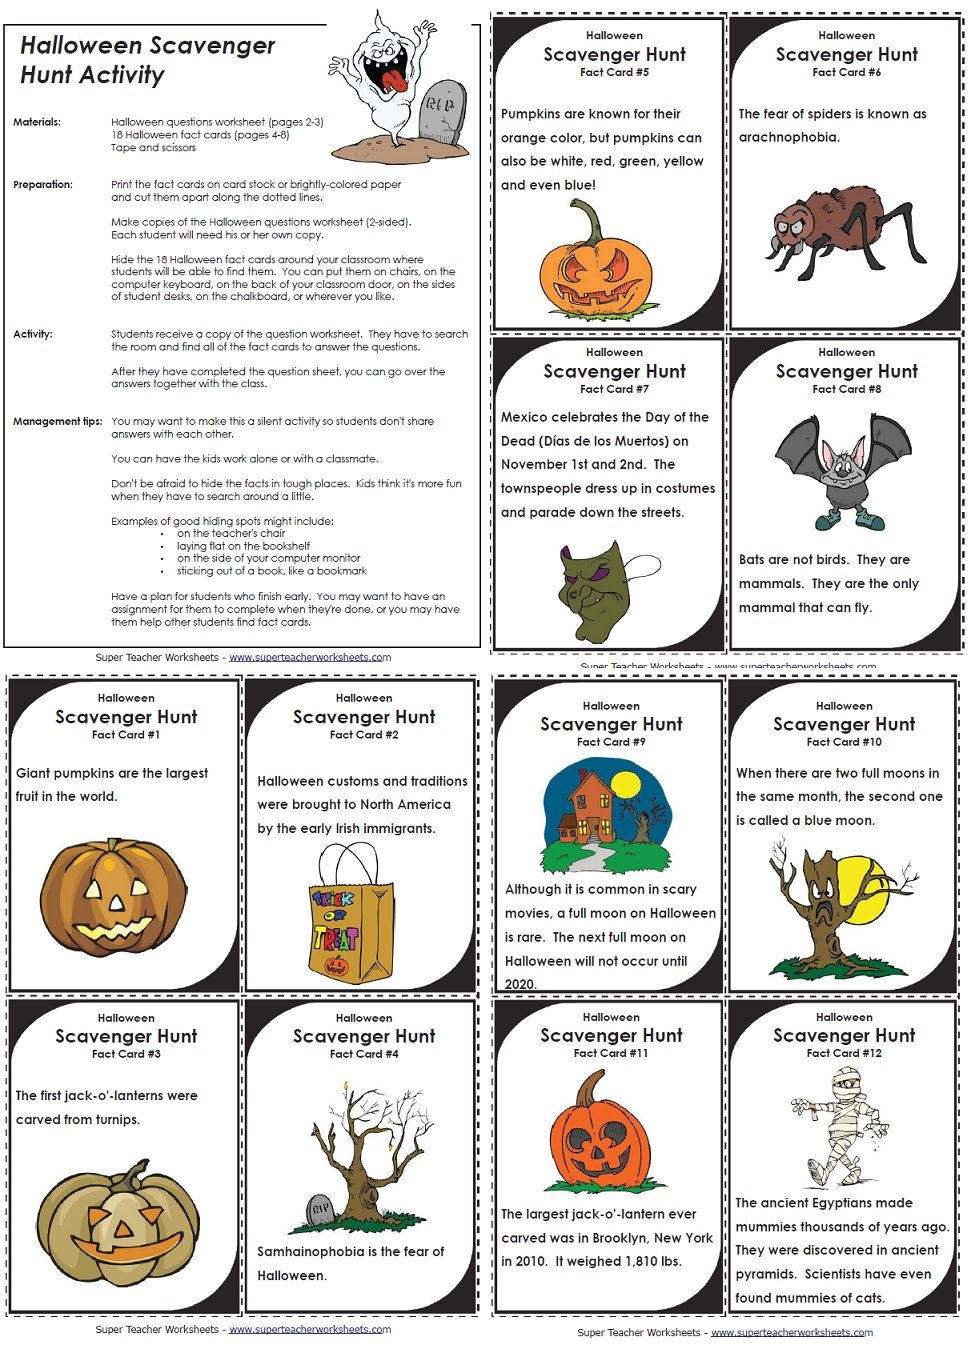 Students will love this Halloween scavenger hunt and learn new ...